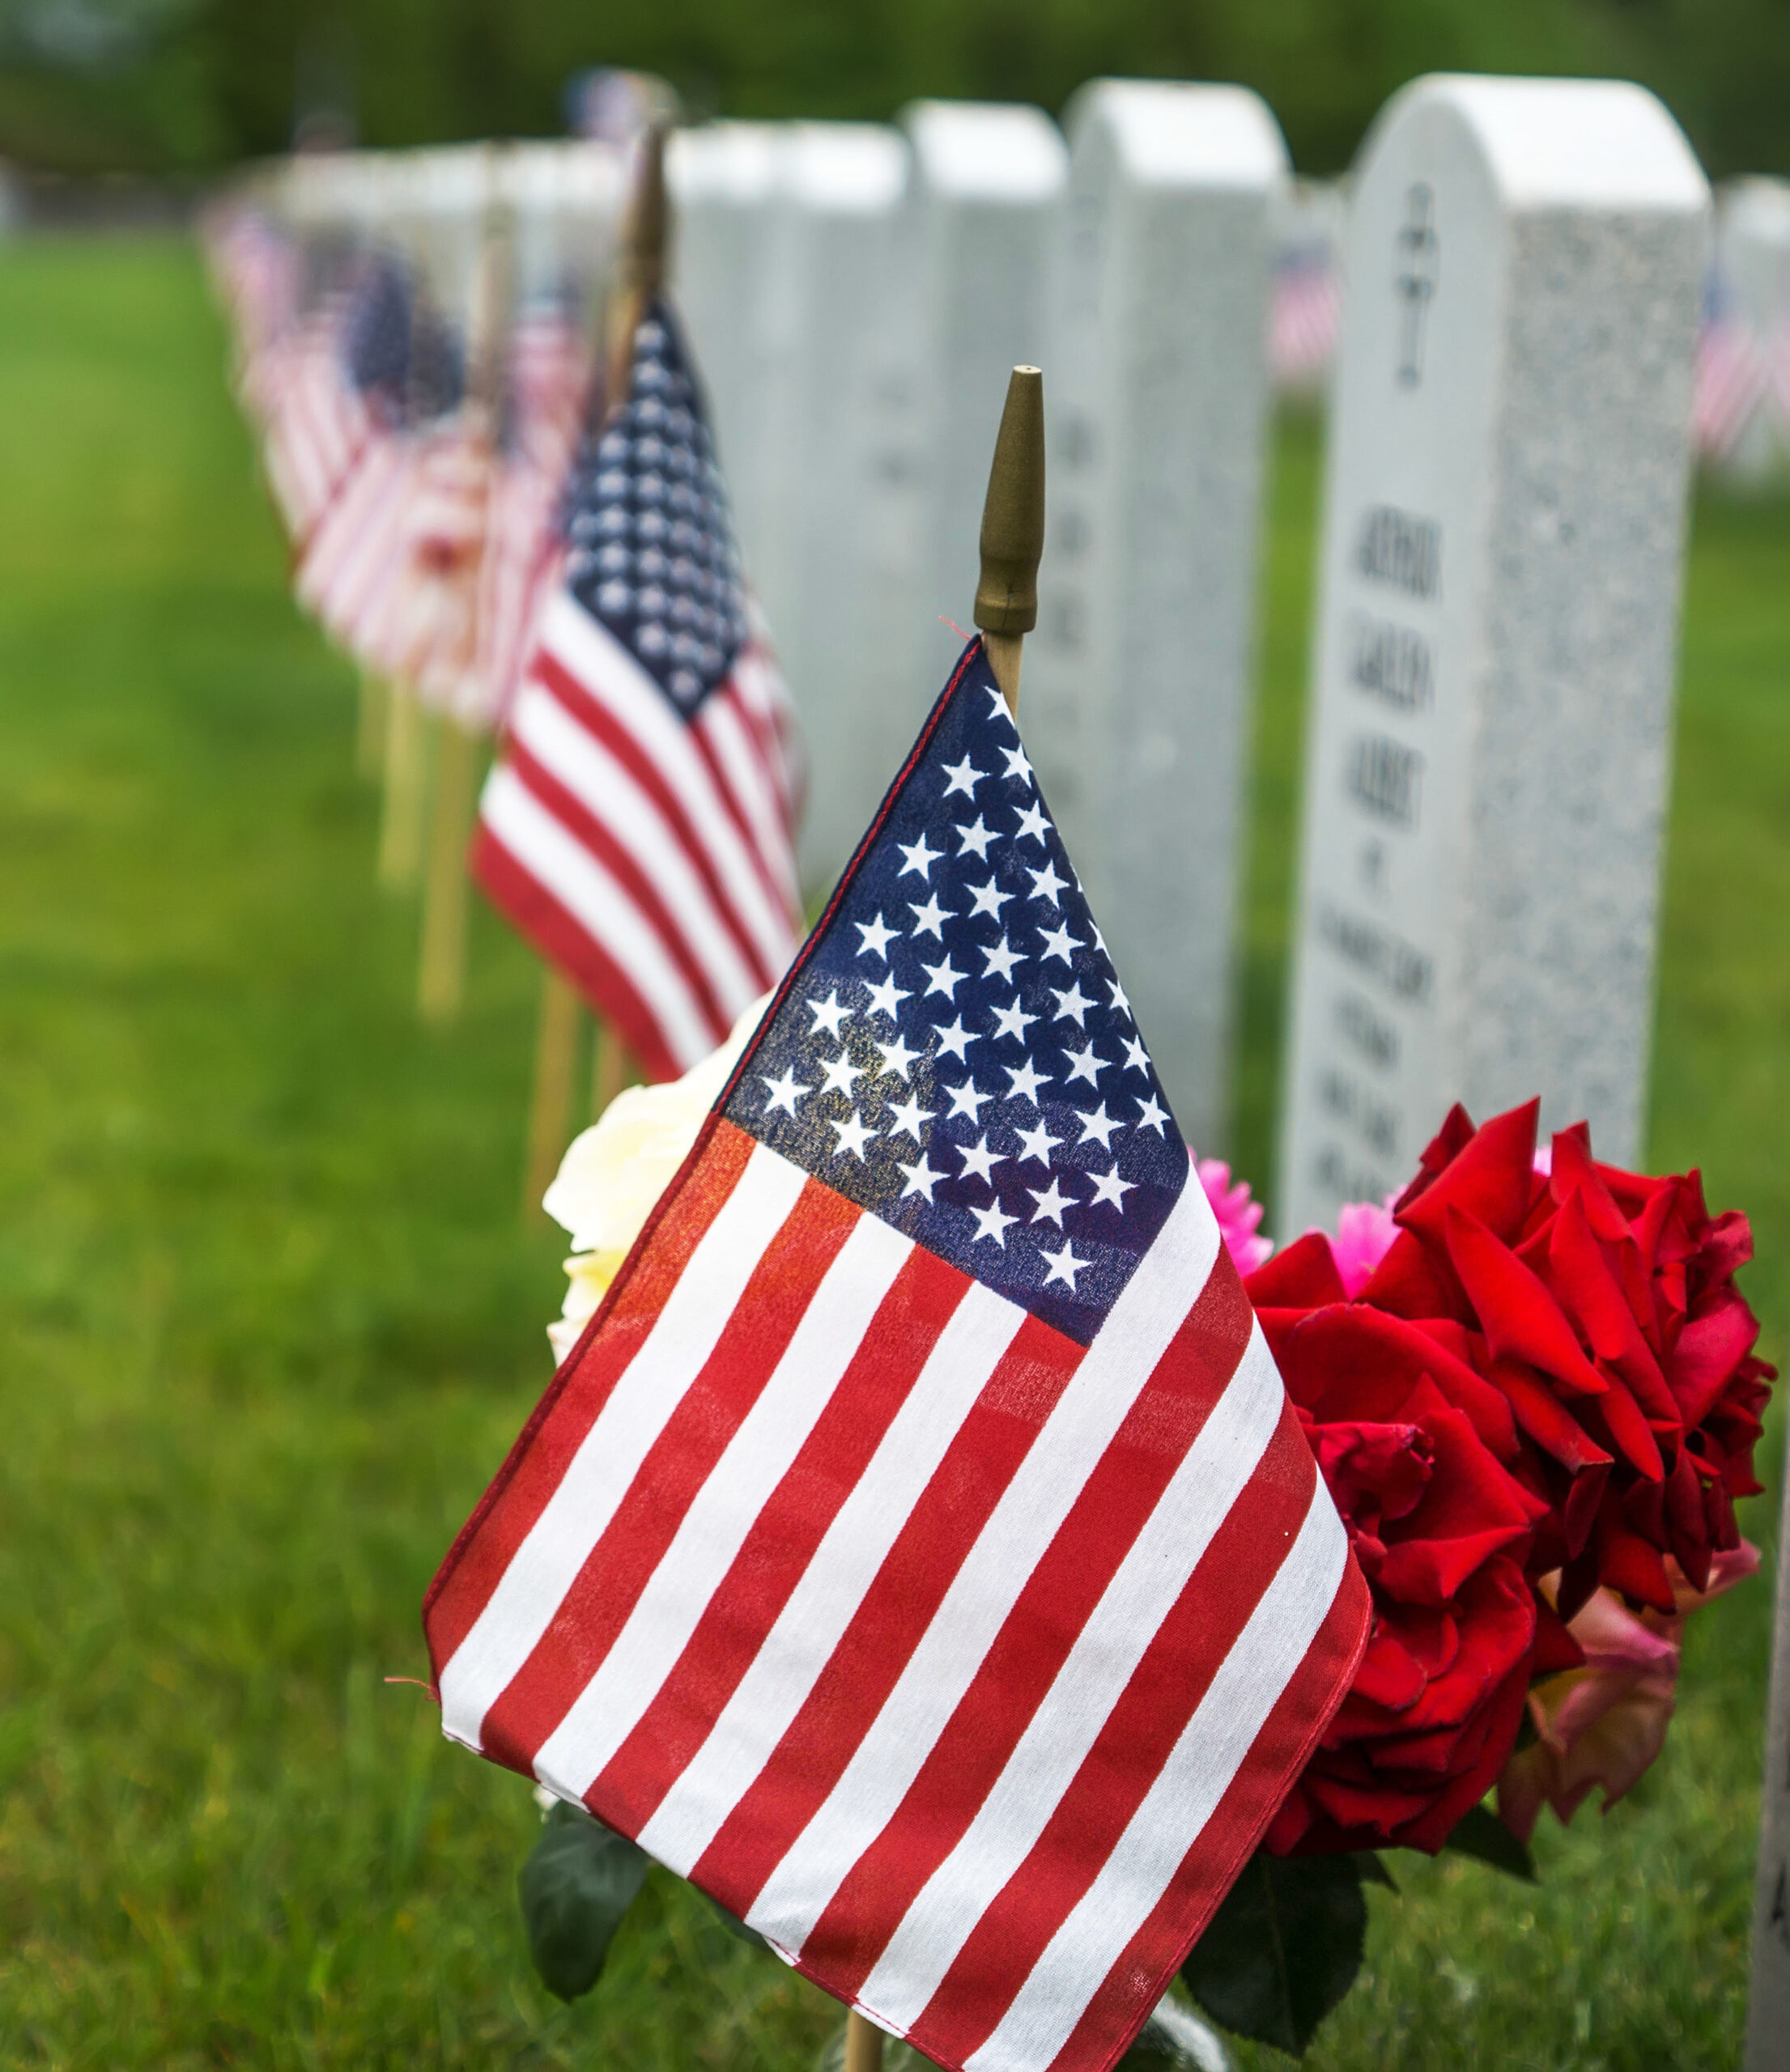 American flags and  tombstones at an American National Cemetery.